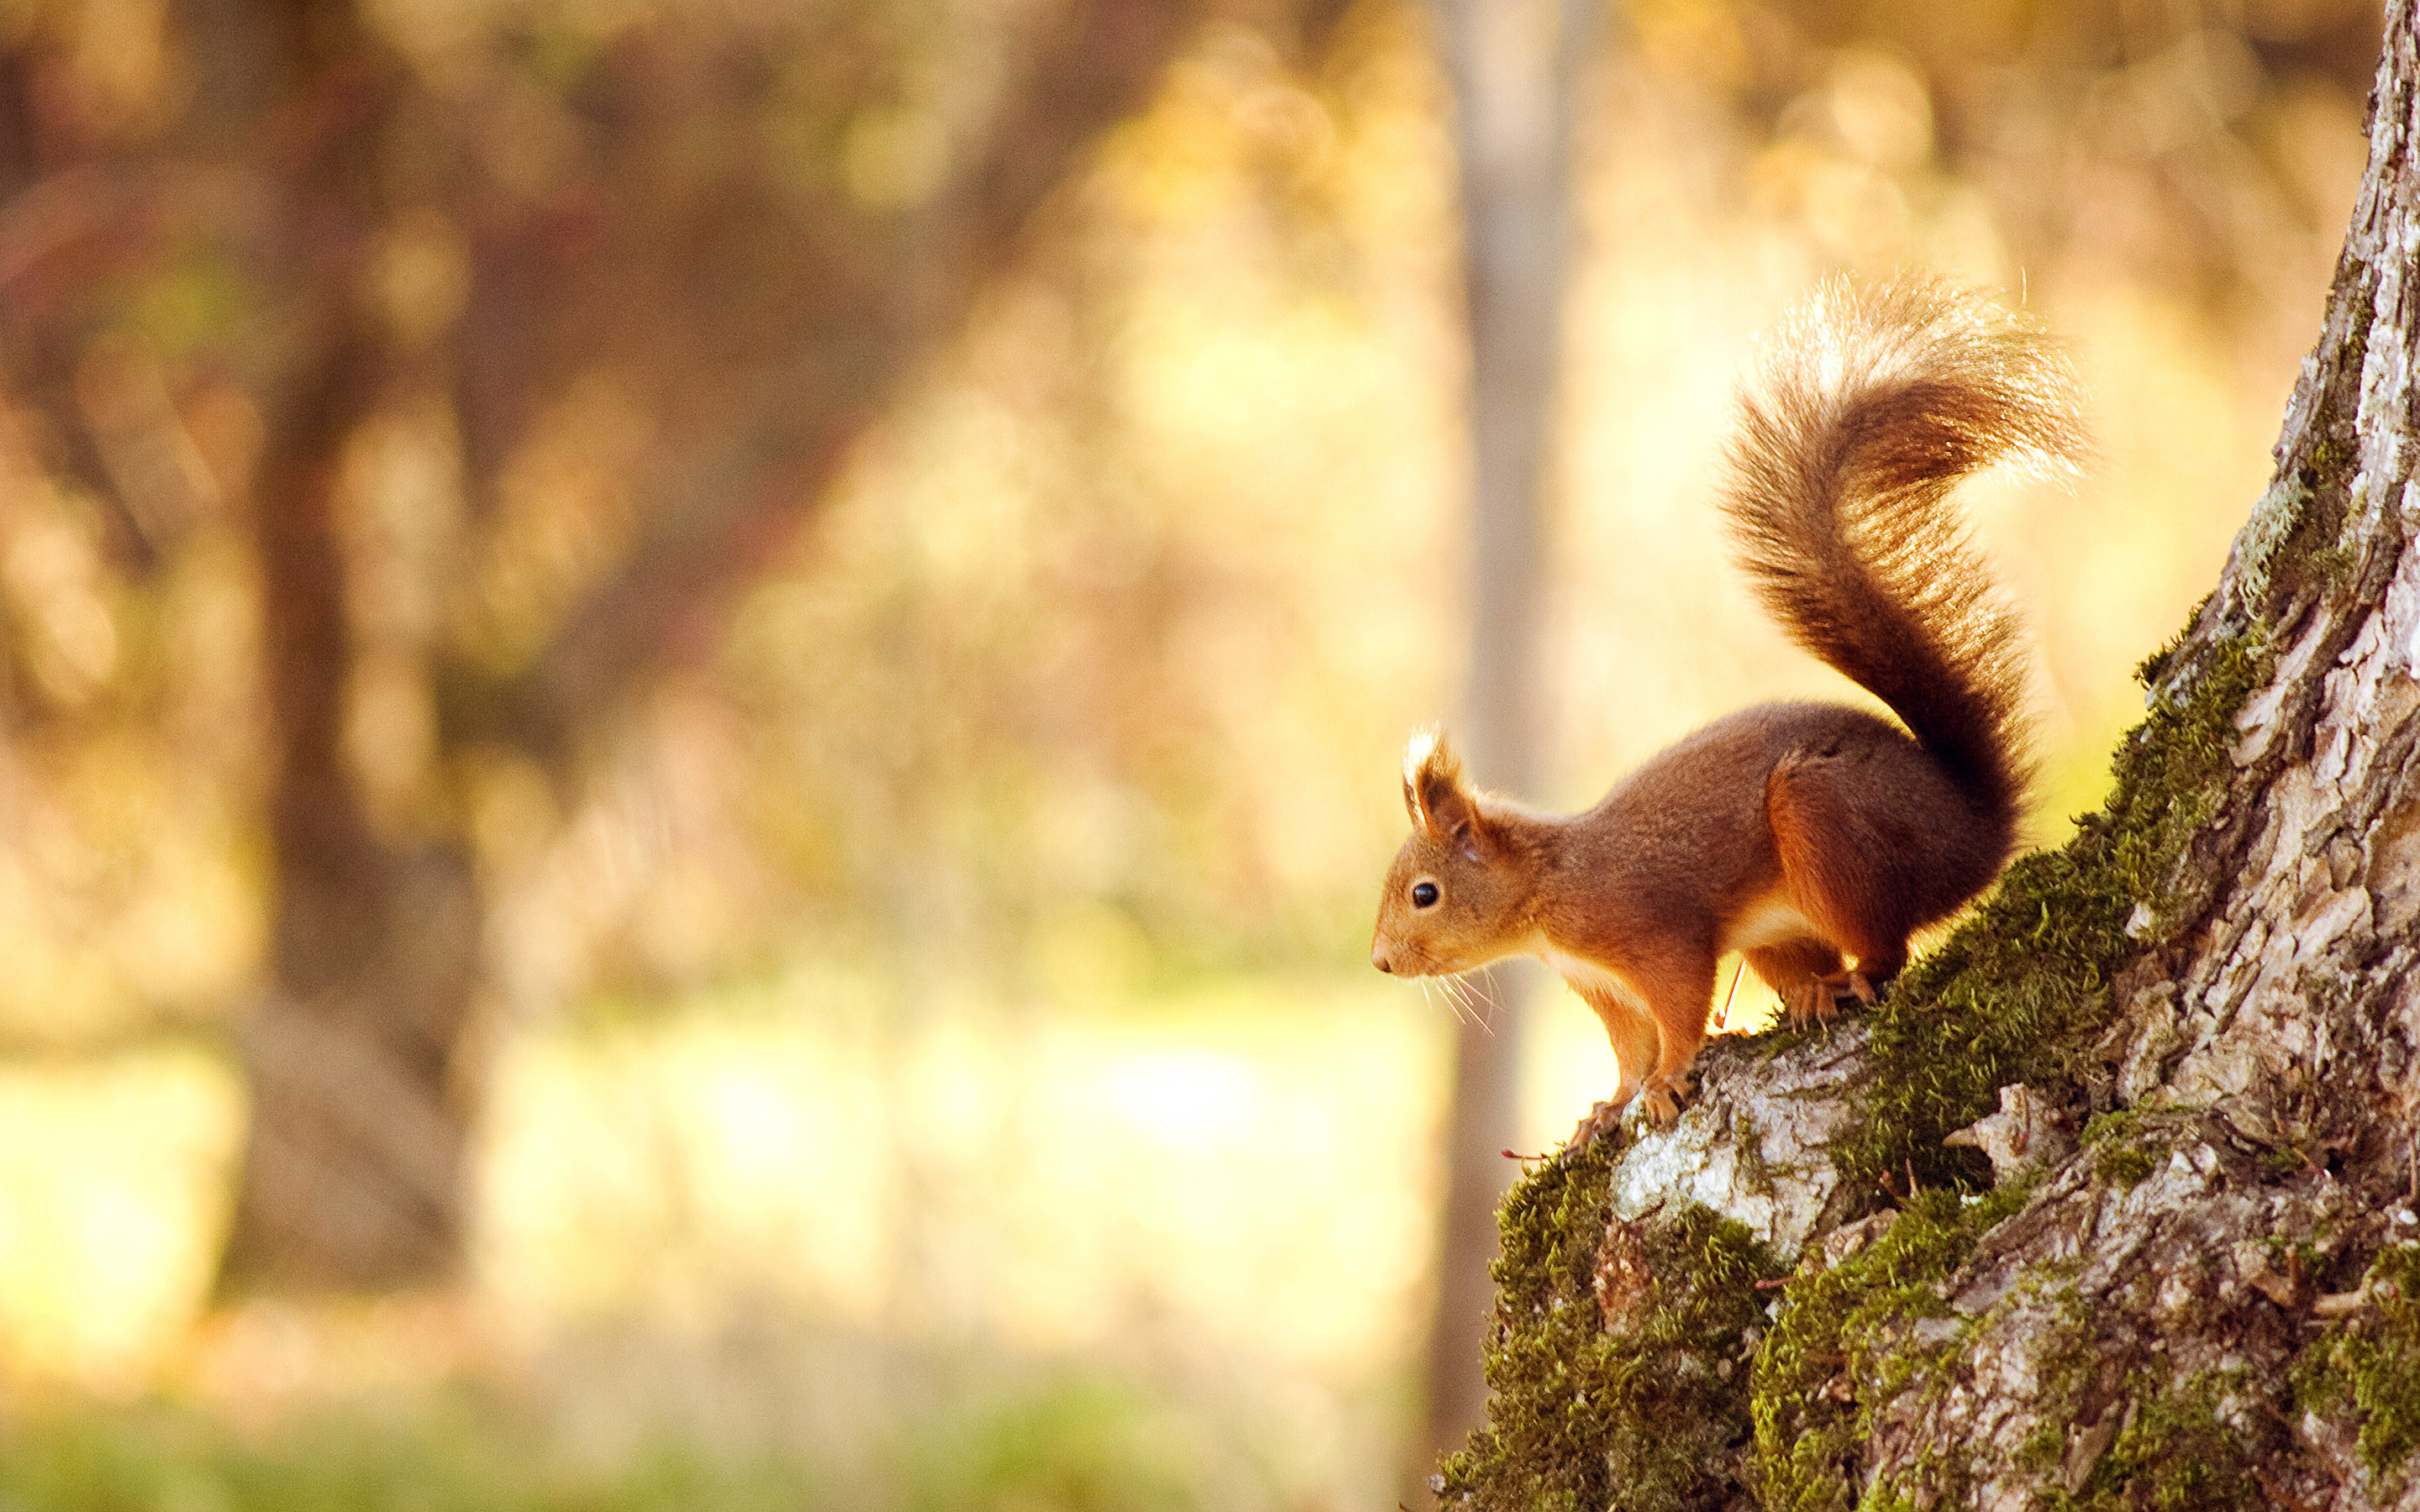 Res: 2880x1800, Animals images, Animals and Hd wallpaper on Pinterest